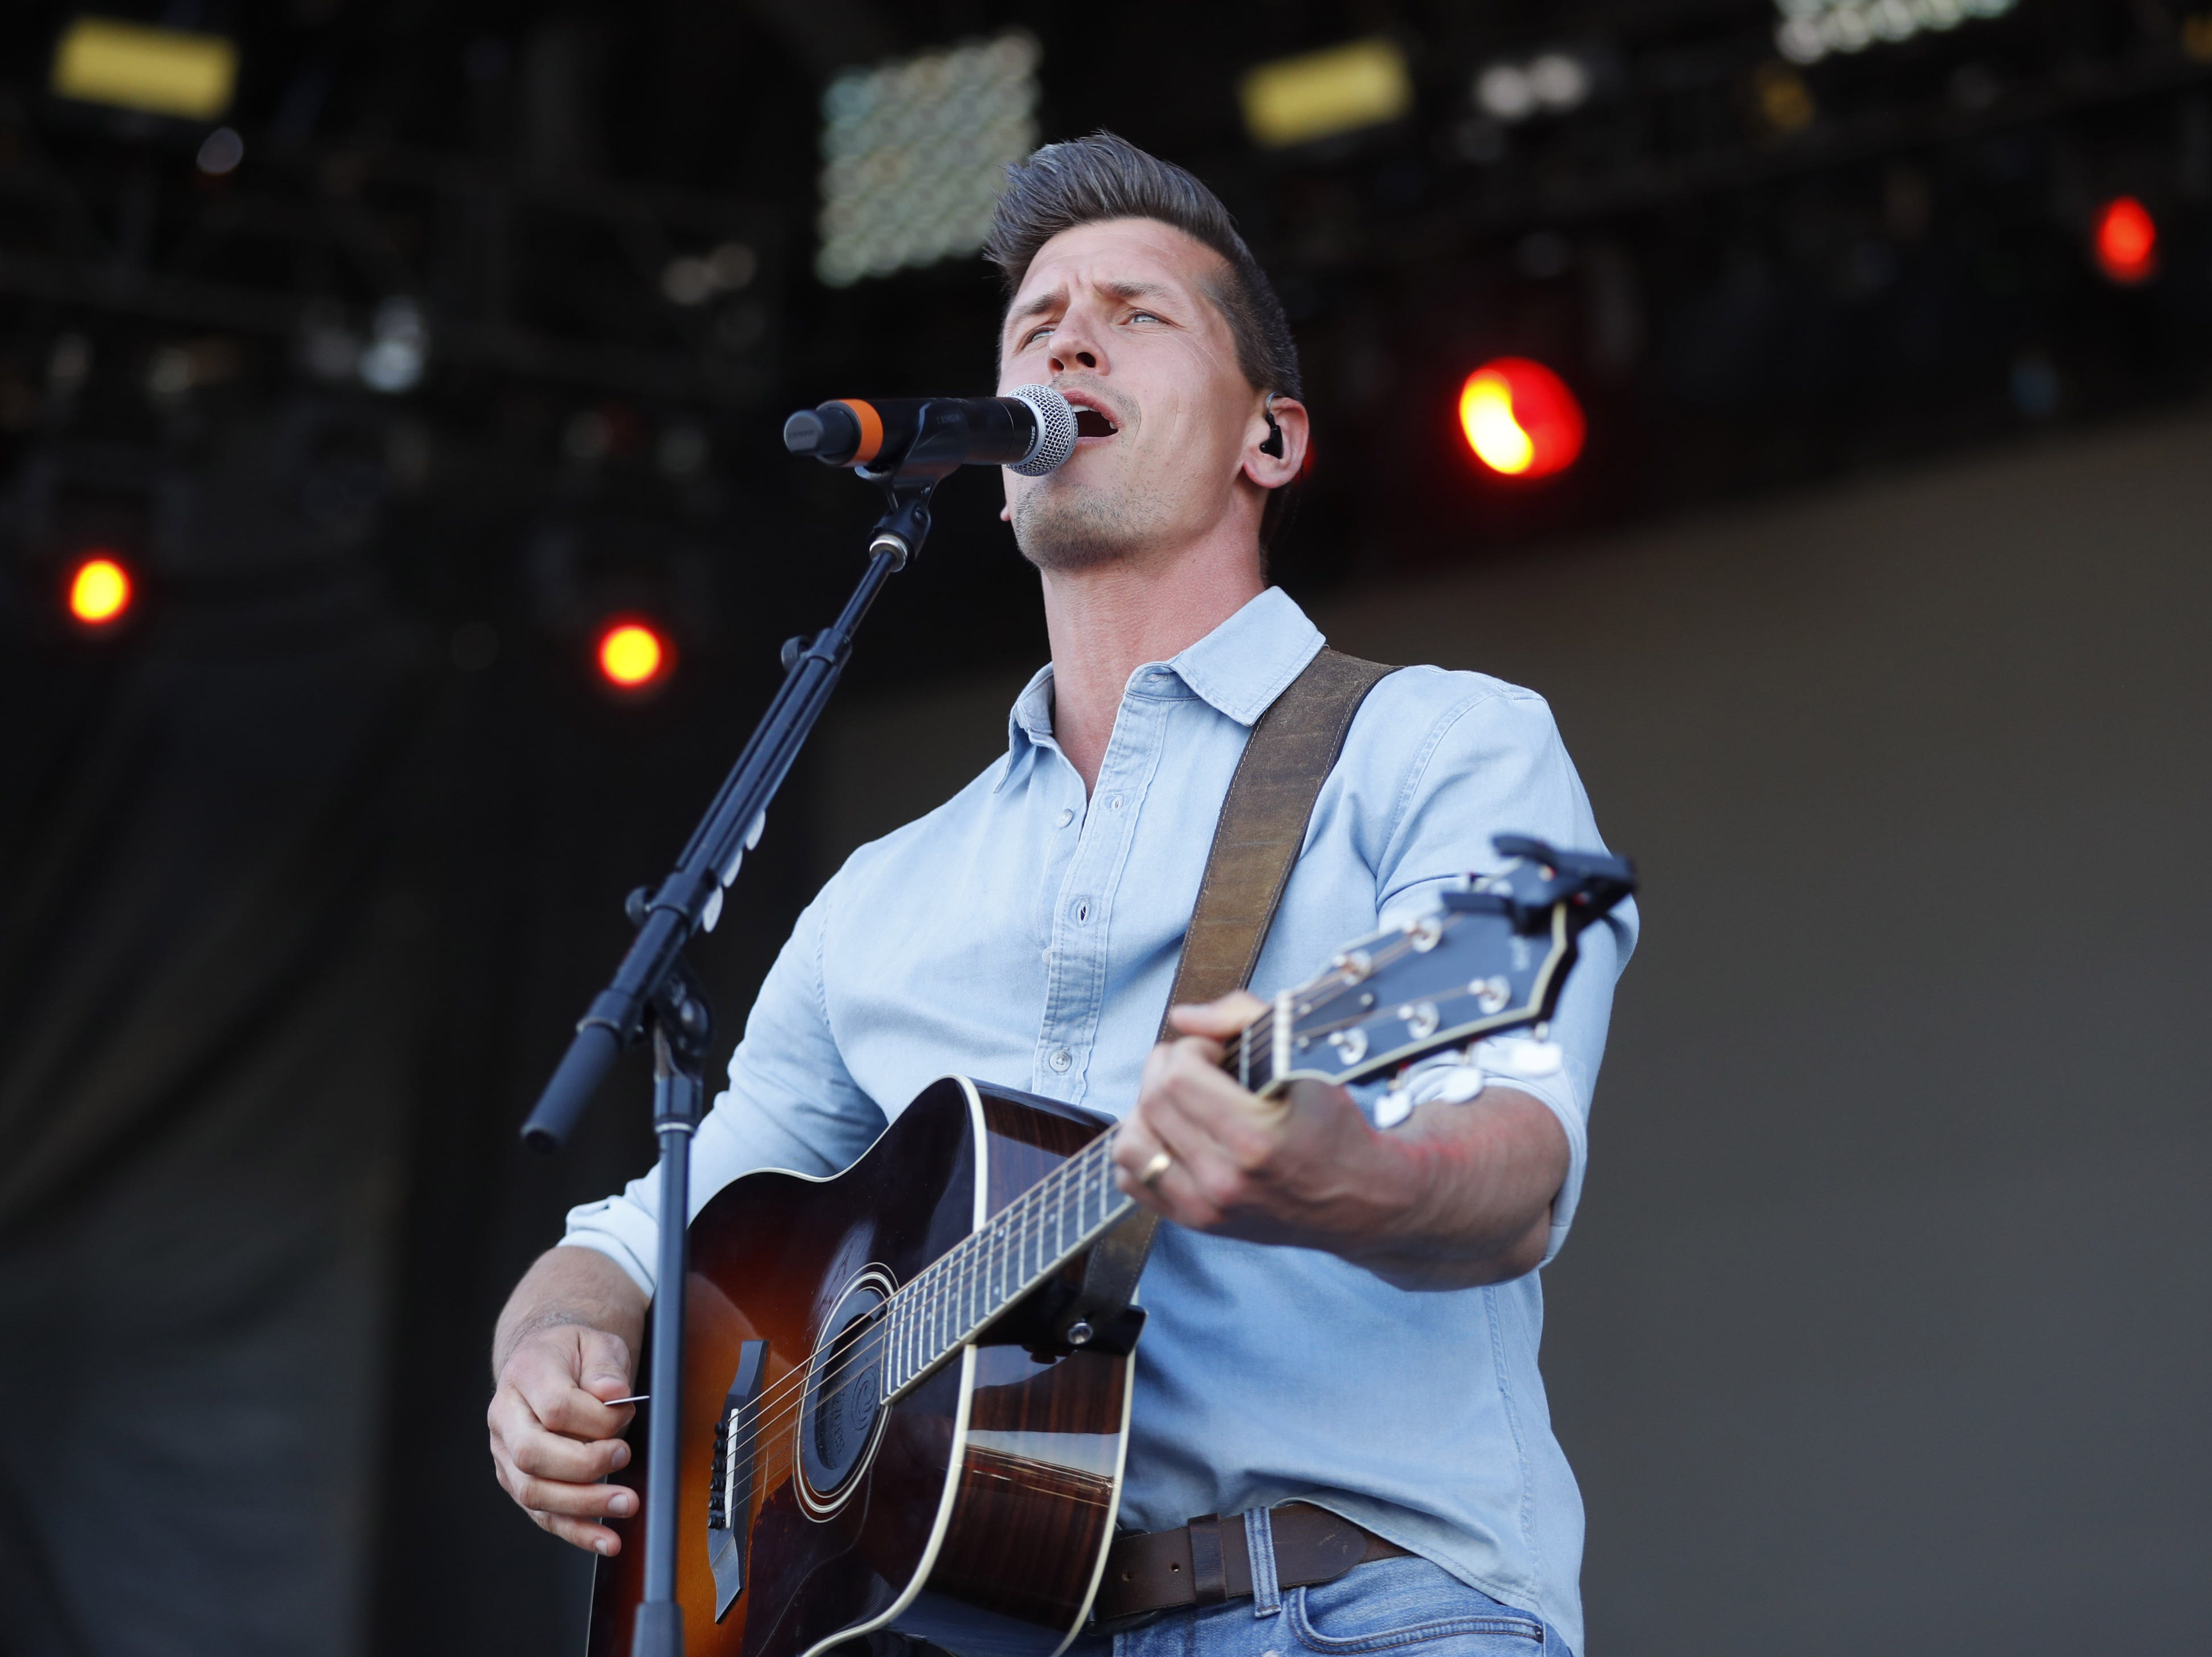 High Valley's Brad Rempel performs during Country Thunder in Florence, Ariz. on Saturday, April 13, 2019.